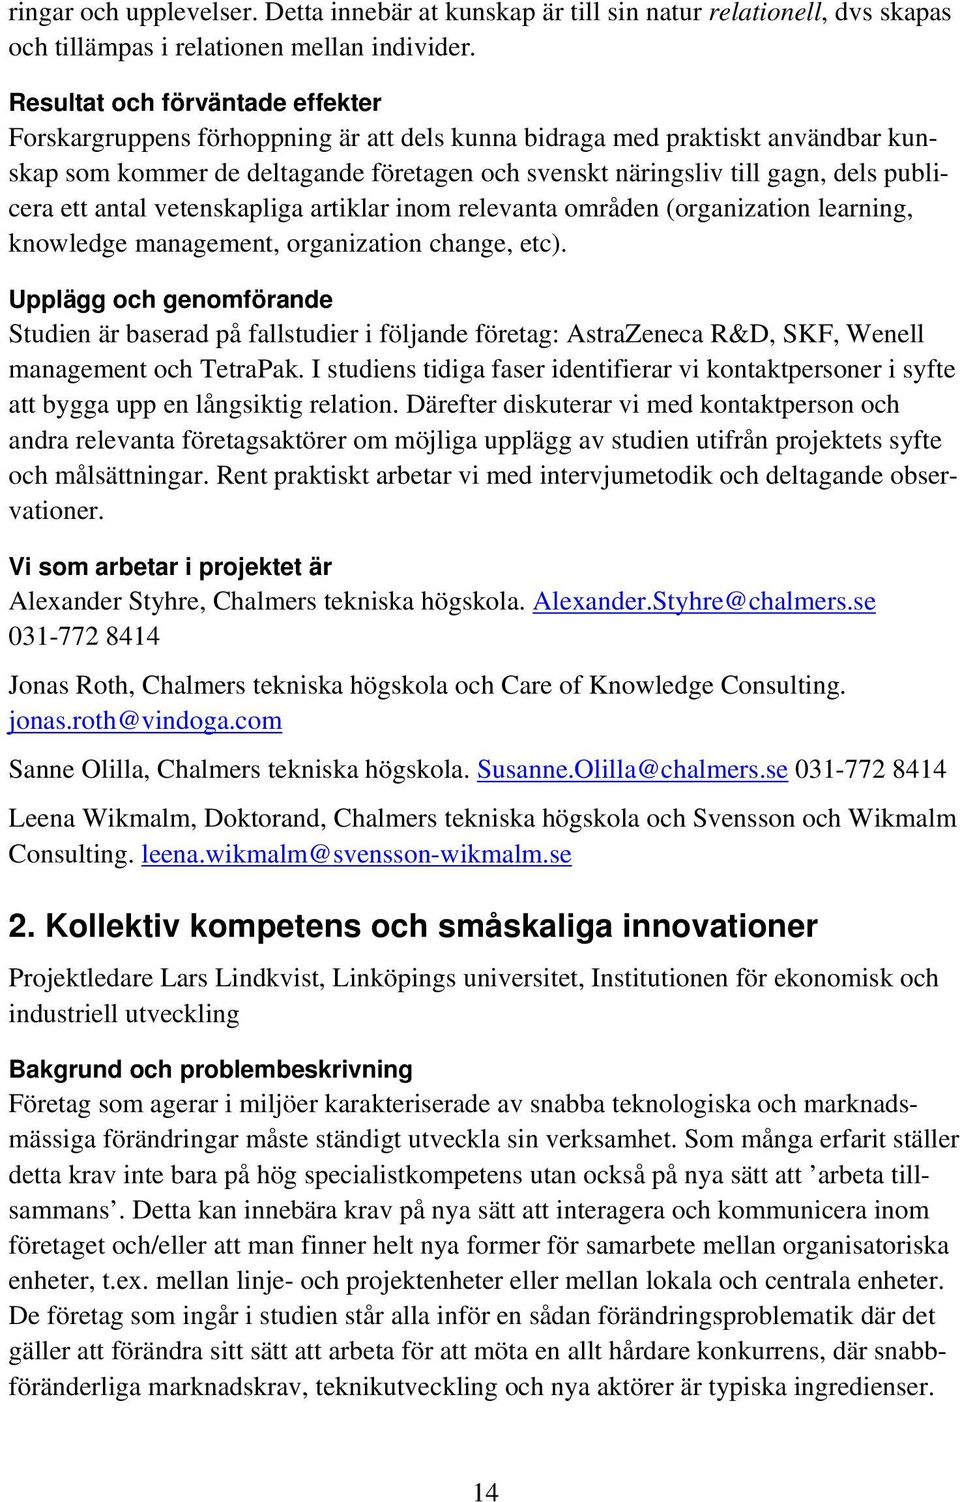 publicera ett antal vetenskapliga artiklar inom relevanta områden (organization learning, knowledge management, organization change, etc).